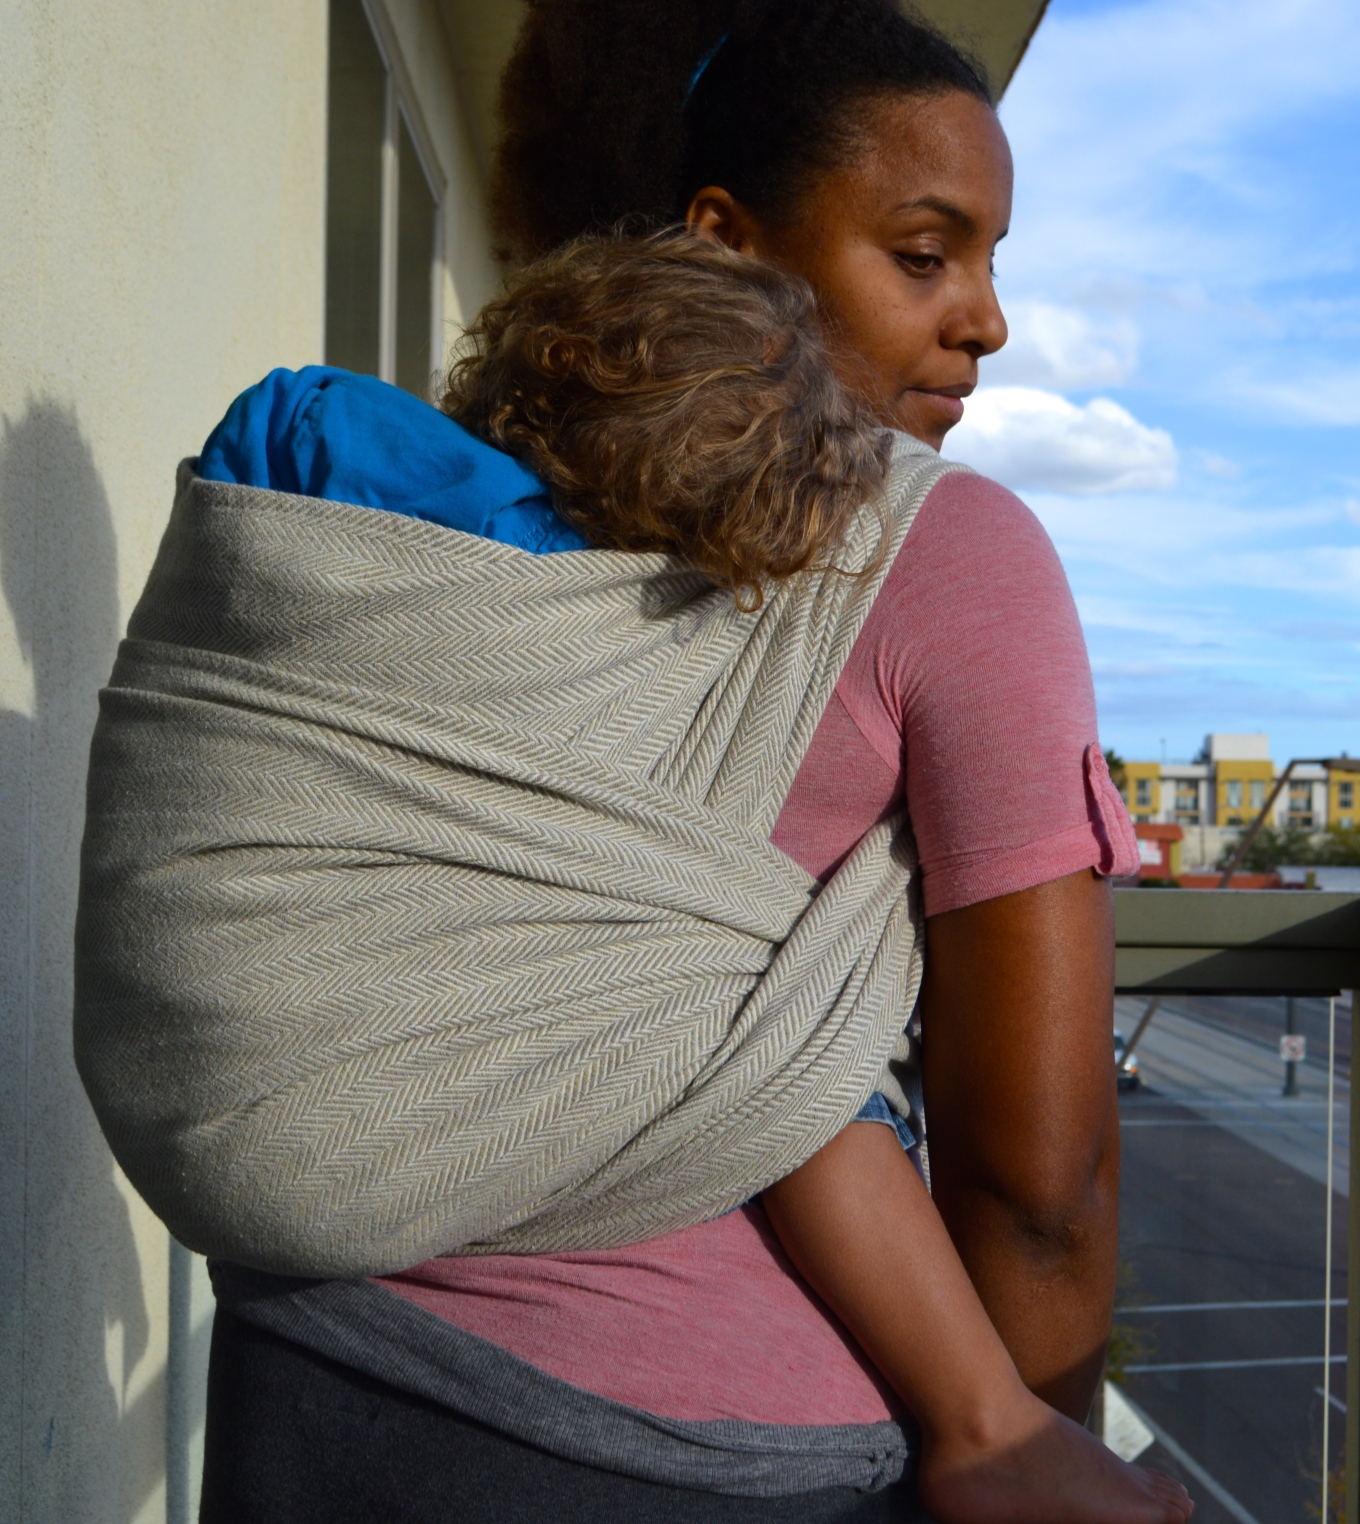 Medium Brown Momma wears her light brown curly blonde haired toddler on her back in a natural oatmeal colored wrap. The wrap passes over baby's back twice and over both legs.